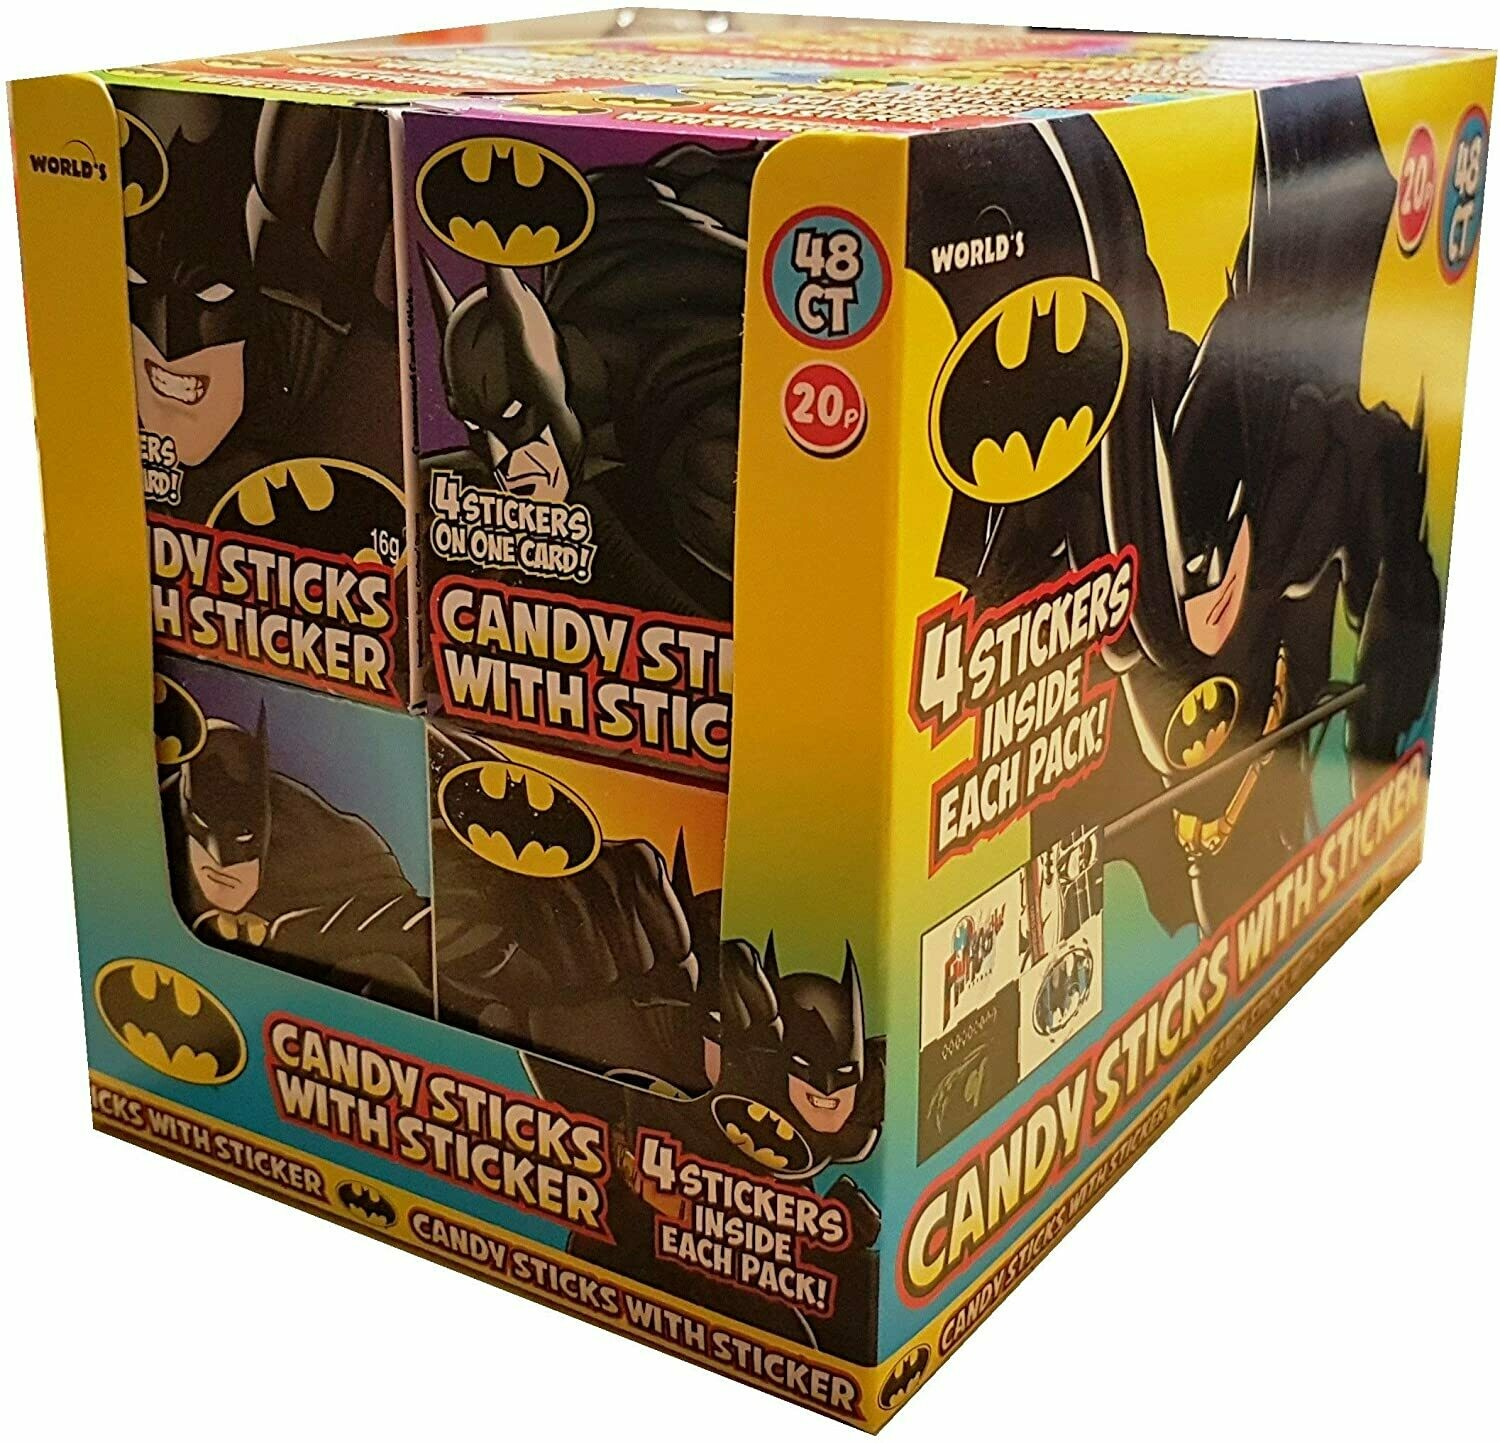 Batman - Assorted Sweet Candy Sticks with Mini Stickers [48 PACK]